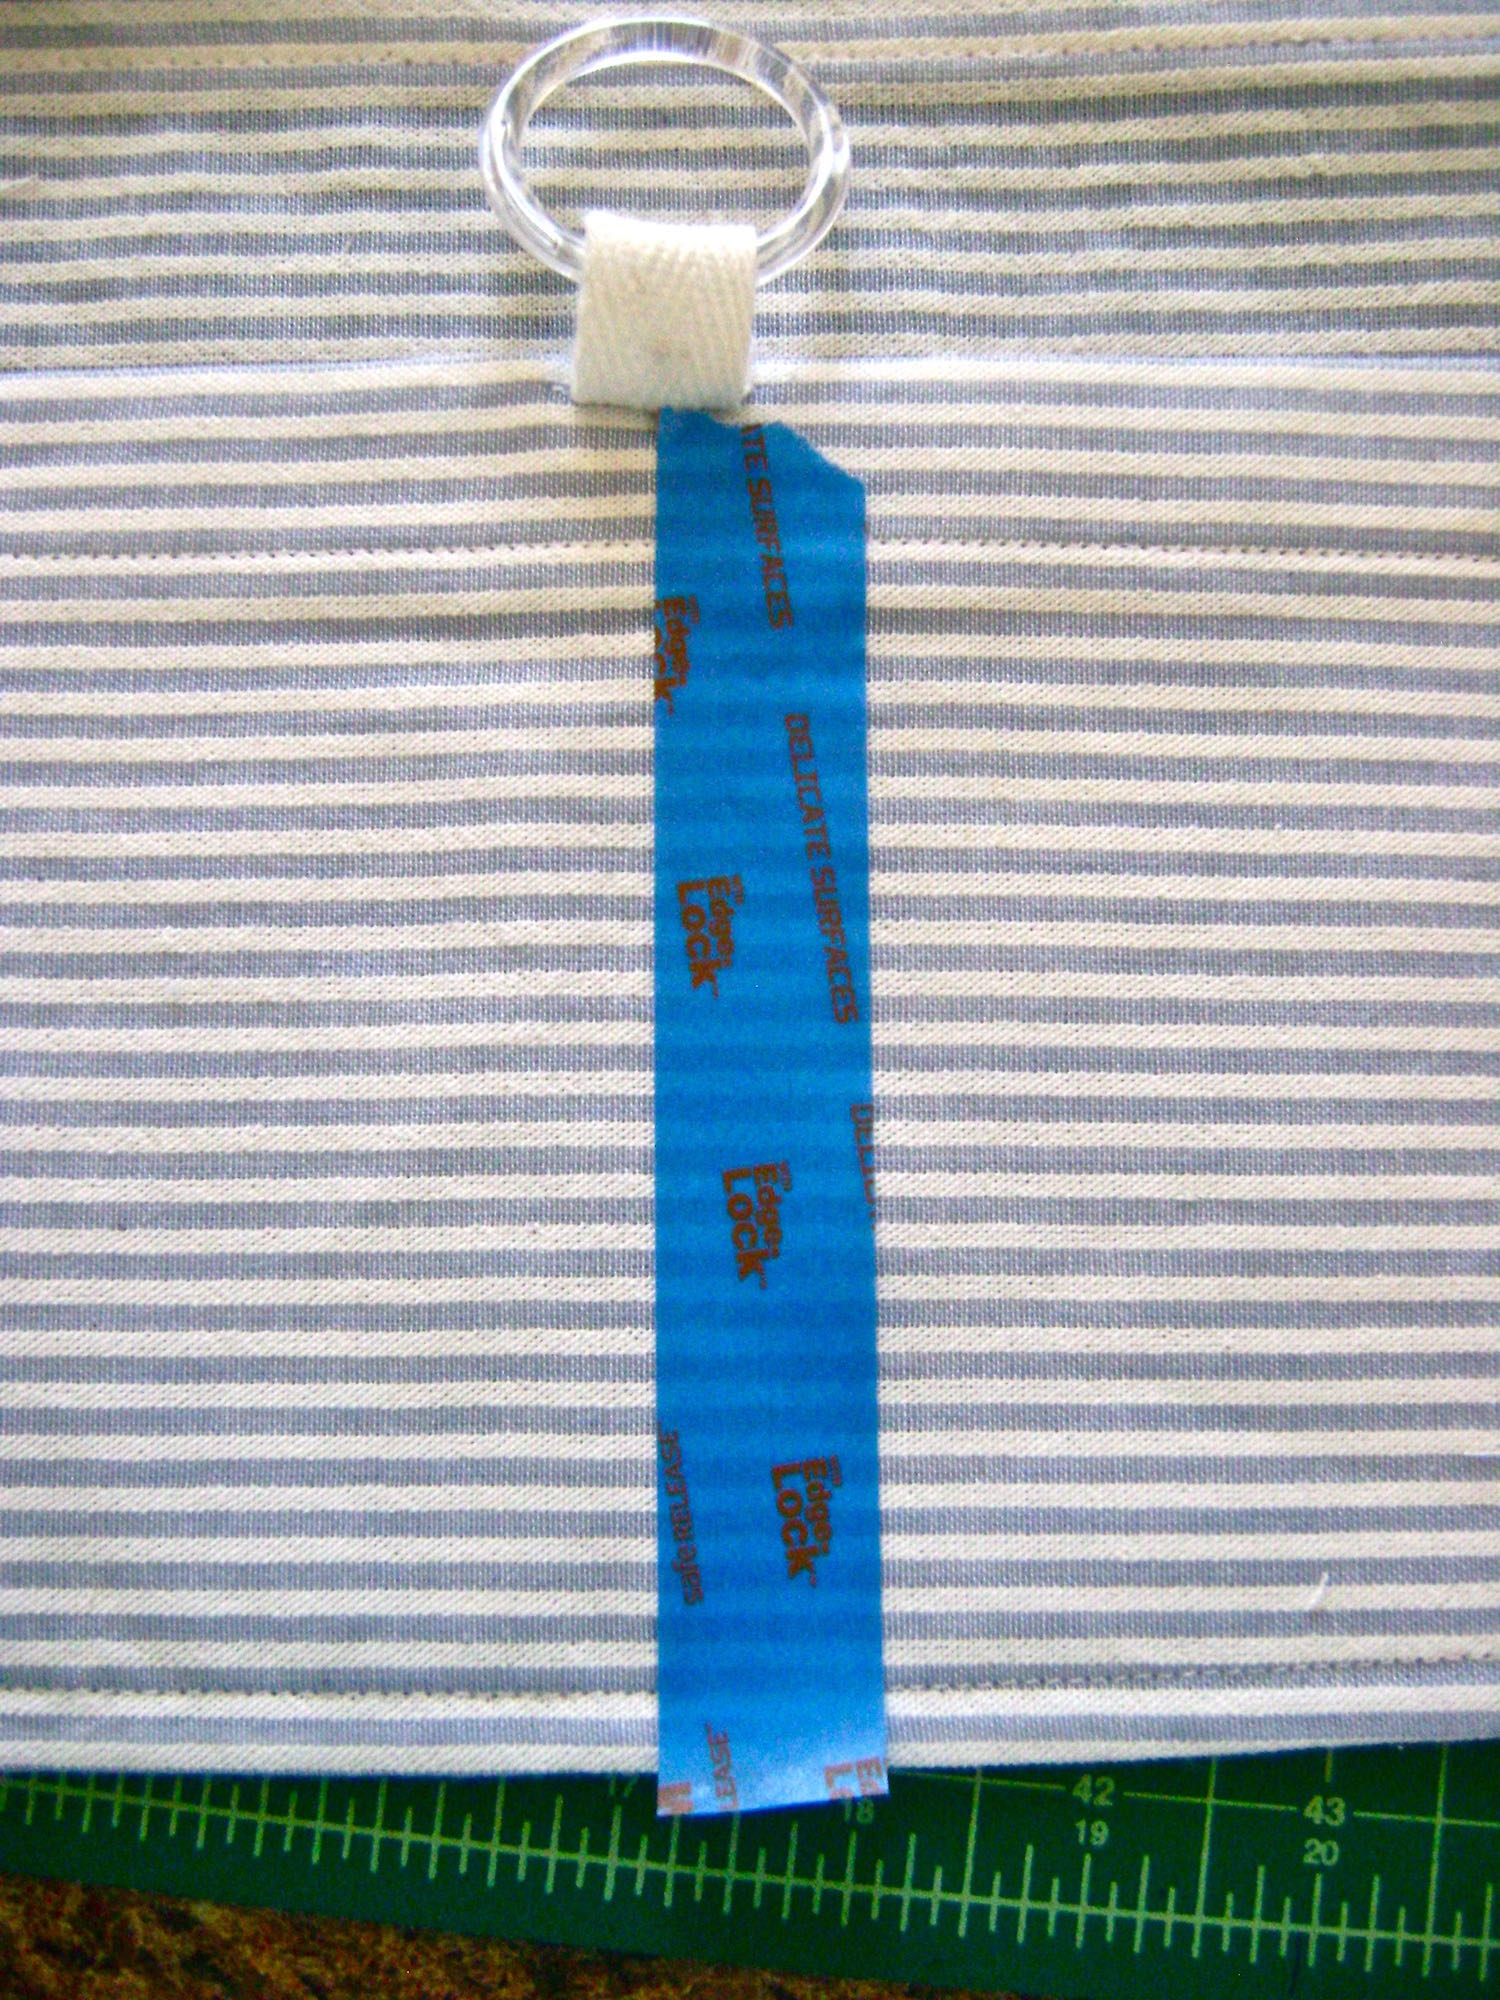 step 18 - Slip a piece of cotton tape through the plastic ring. Sew the tape to the top center of the pocket with the raw edges inside. Mark the vertical center of the pocket with tape and stitch along the tape edge from the bottomup to the tape to create a divided pocket.